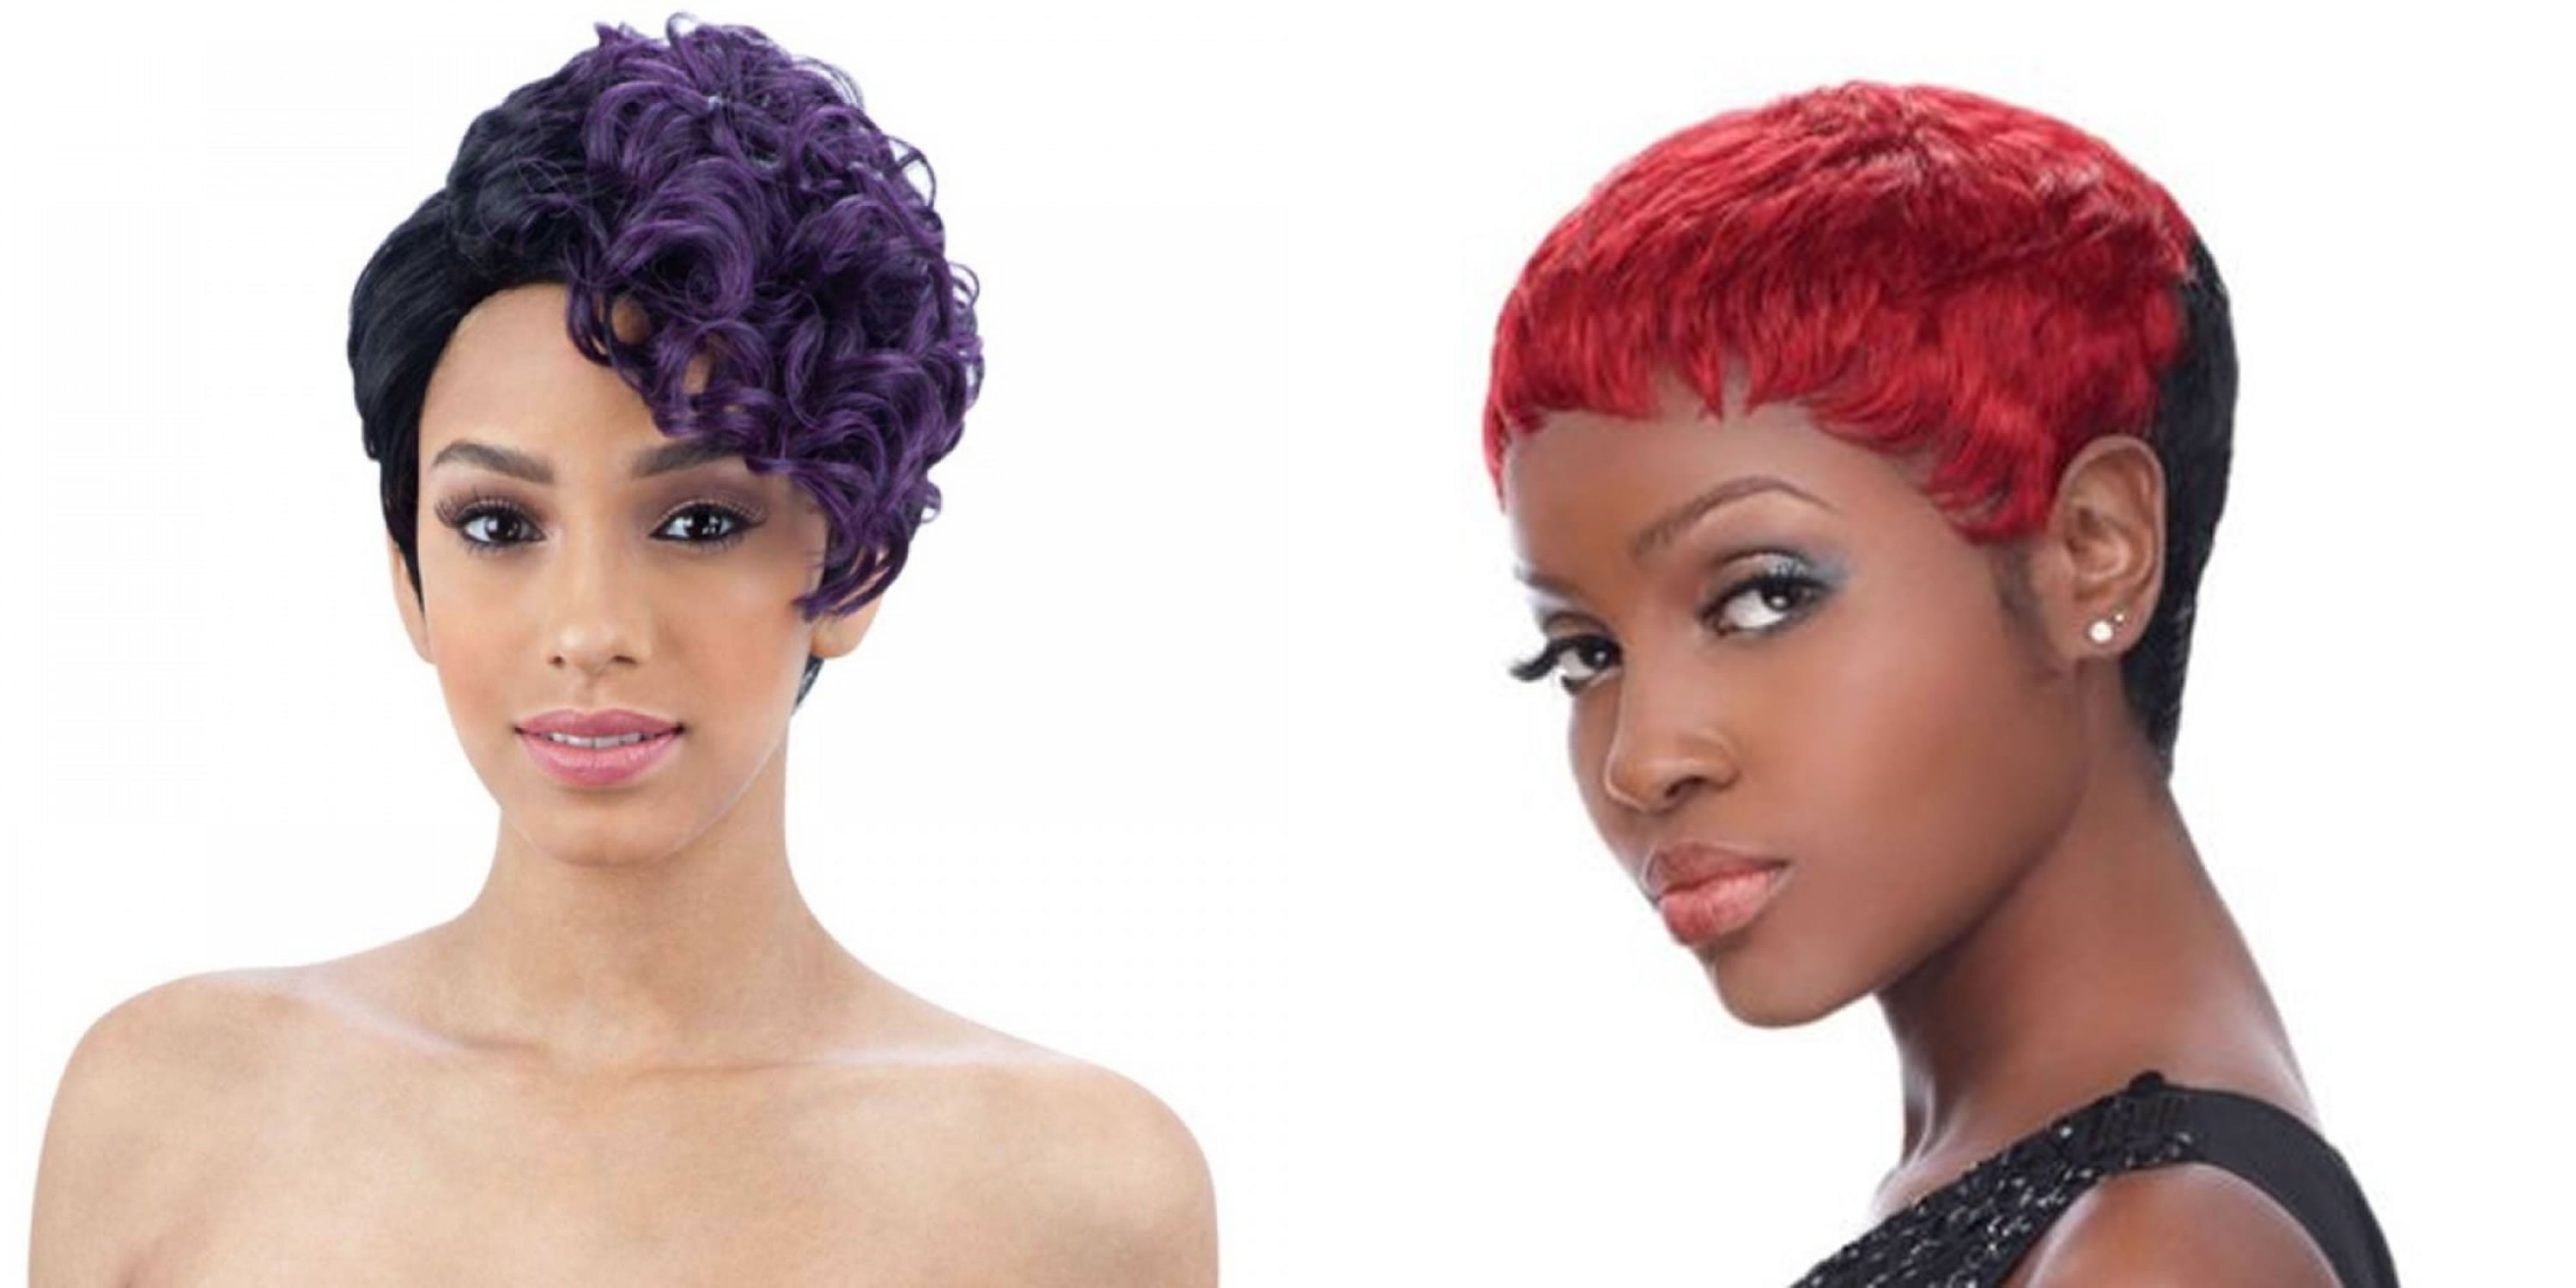 Pixie Hairstyles For Black Women